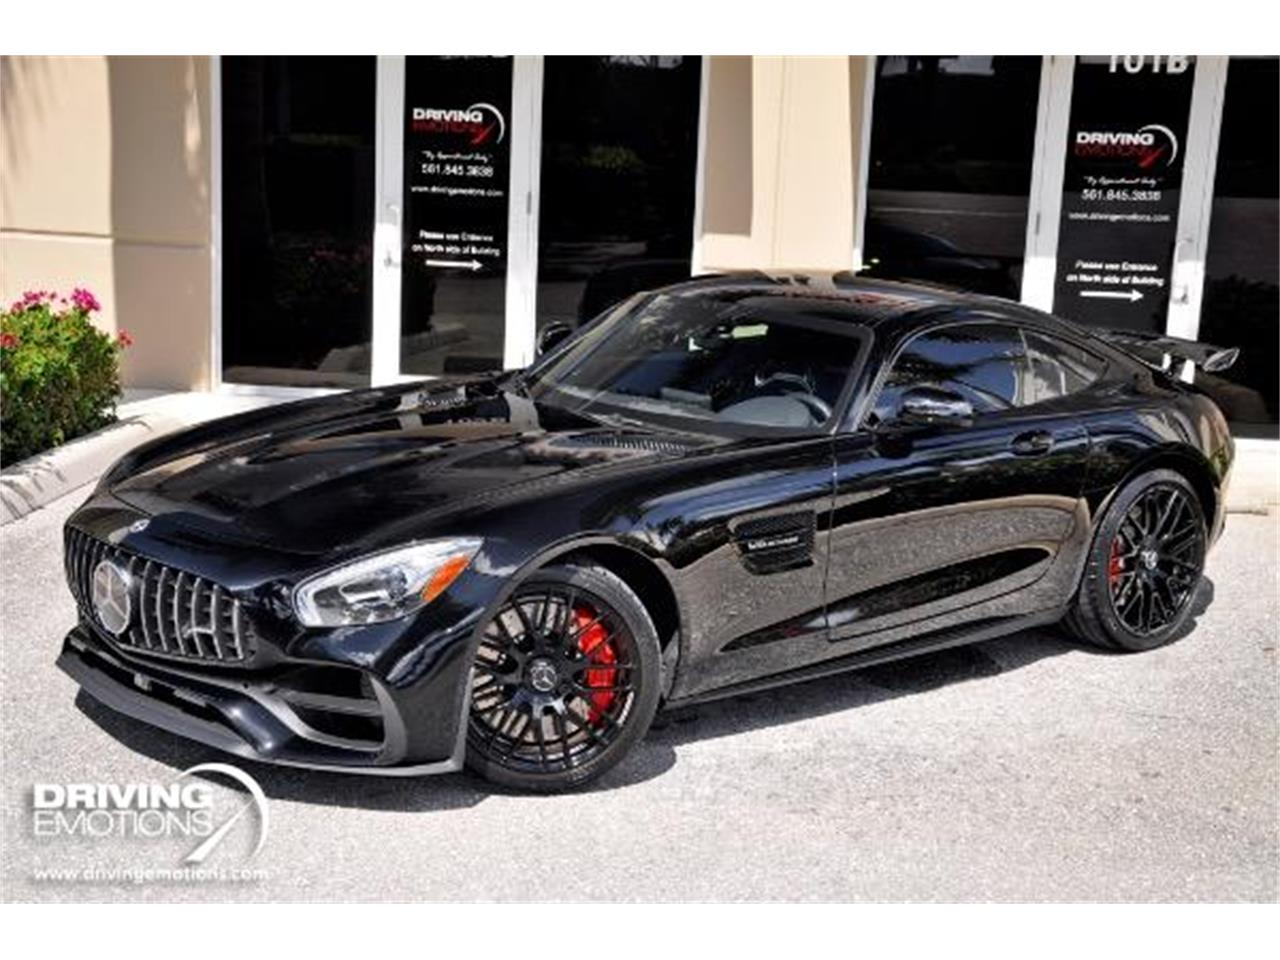 Large Picture of 2018 Mercedes-Benz AMG located in West Palm Beach Florida - $114,800.00 - QQMI